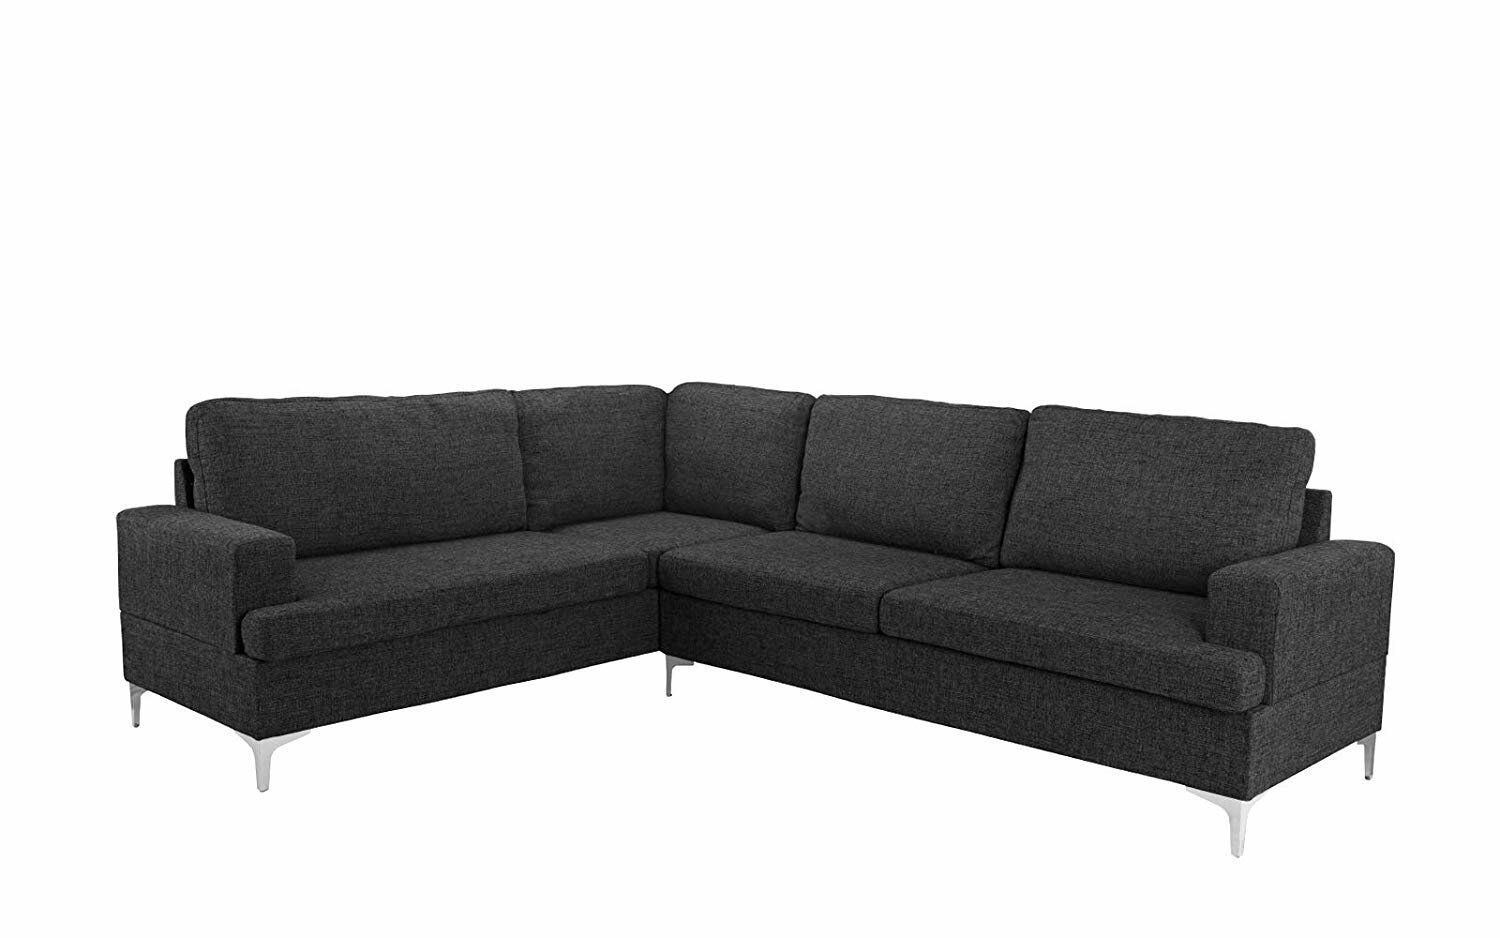 Details About Large Living Room Linen L Shape Sectional Sofa Classic L Shape Couch Dark Grey Oversized Sectional Sofa L Shaped Couch Sectional Sofa